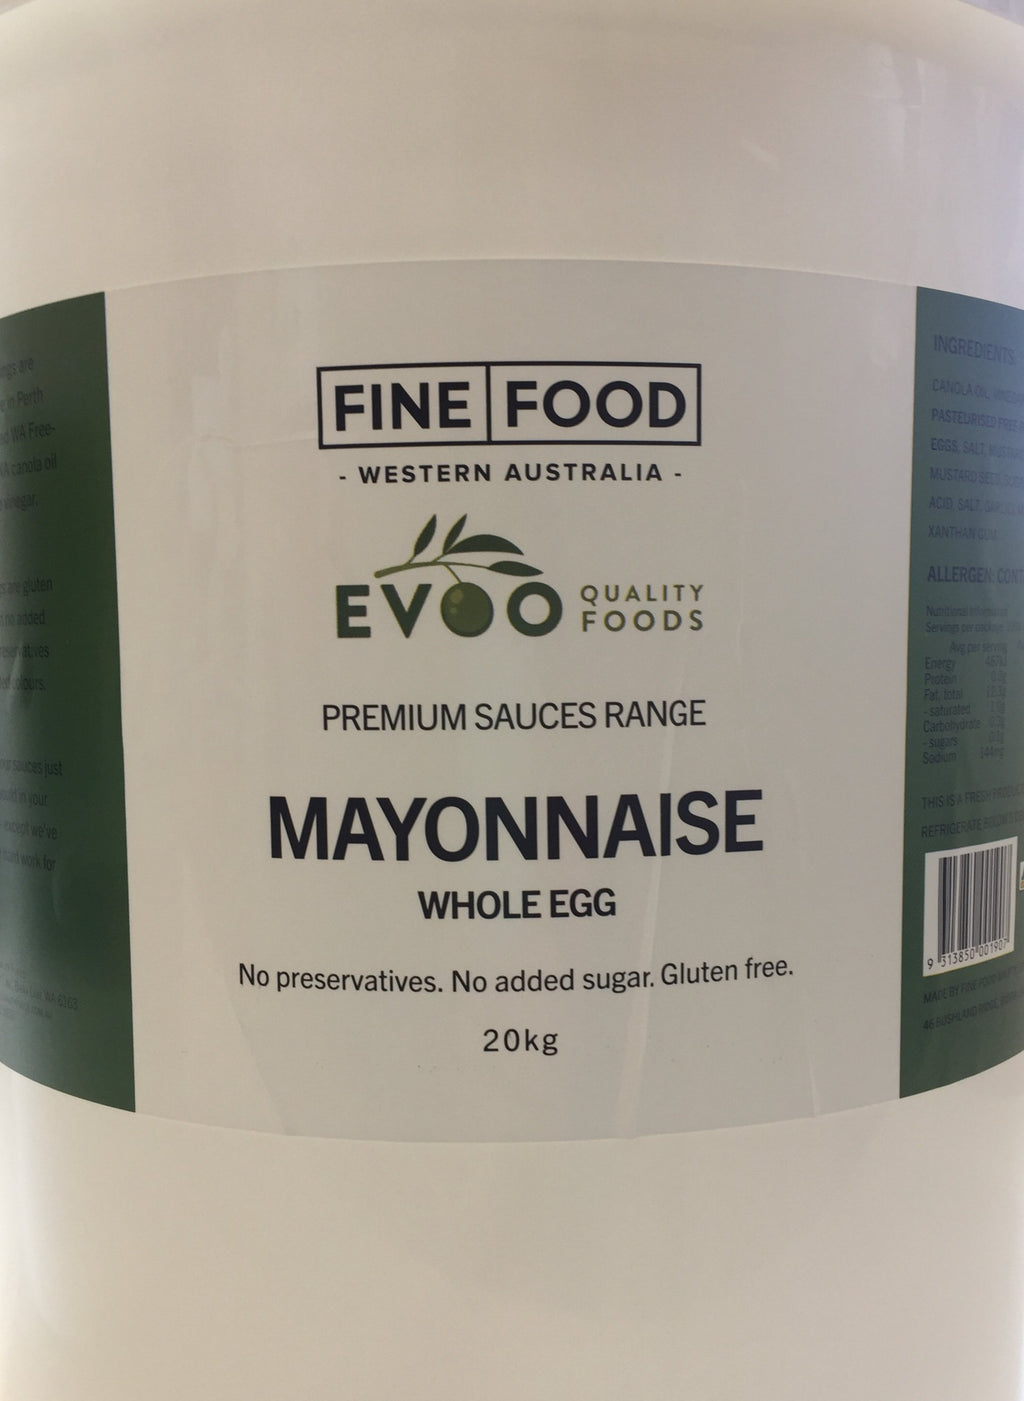 Mayonnaise Whole Egg 20kg Tub EVOO QF